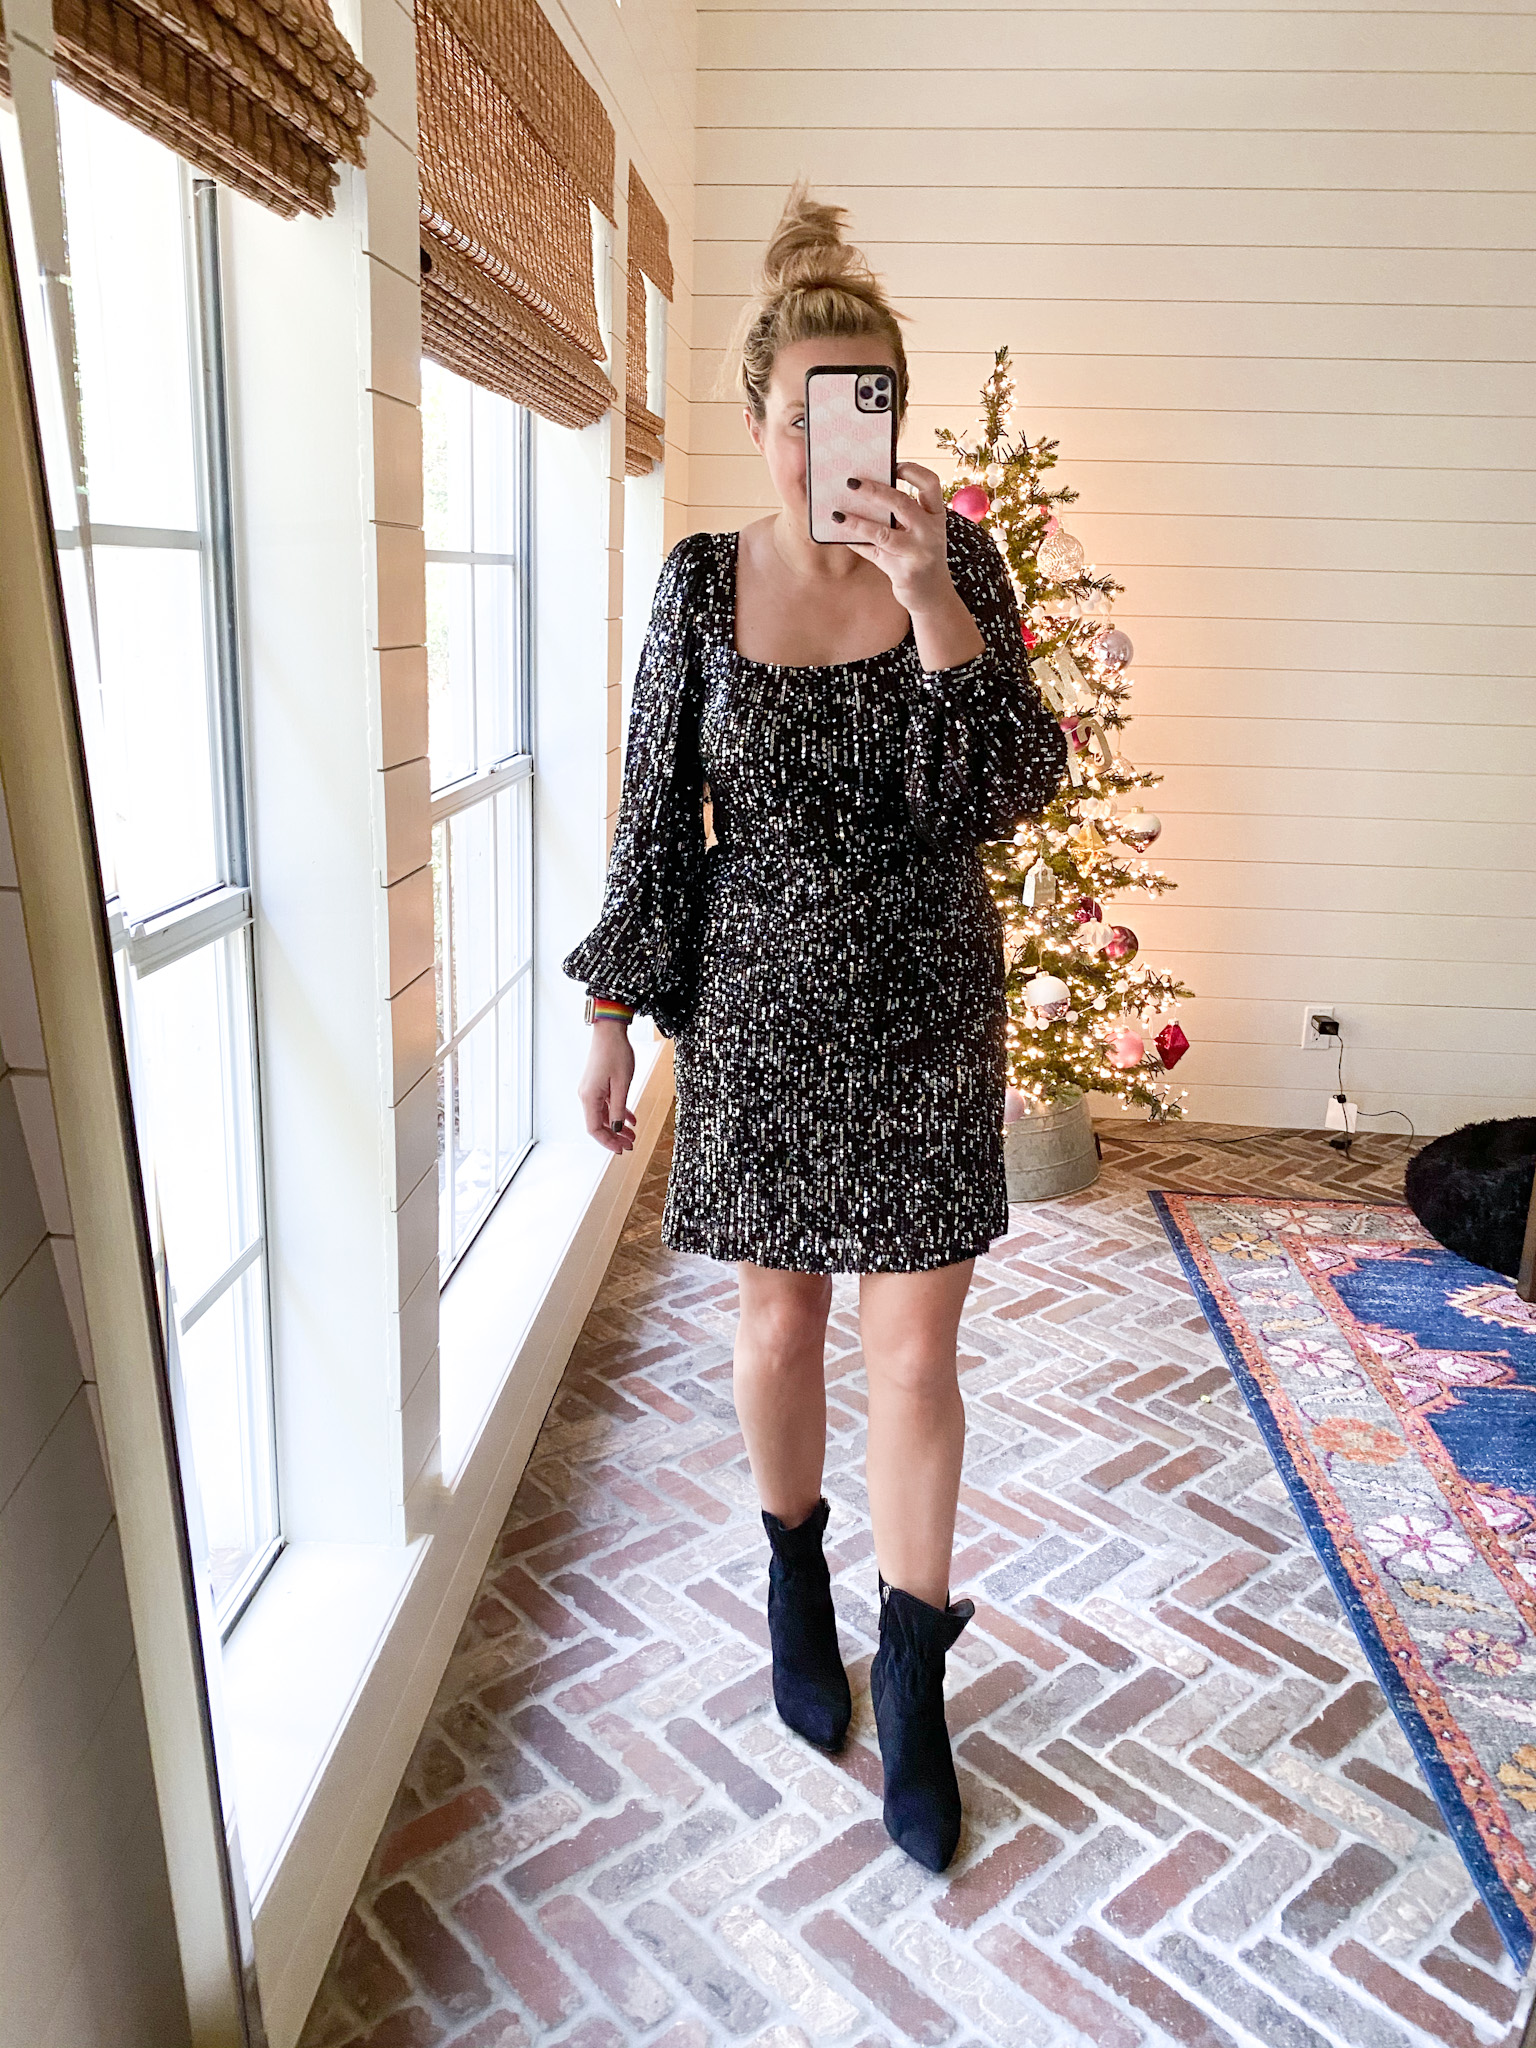 Walmart Womens Clothes by popular Houston fashion blog, Fancy Ashley: image of a woman wearing a Walmart Scoop Women's Sequin Dress with Bishop Sleeves and Walmart Scoop black suede booties.